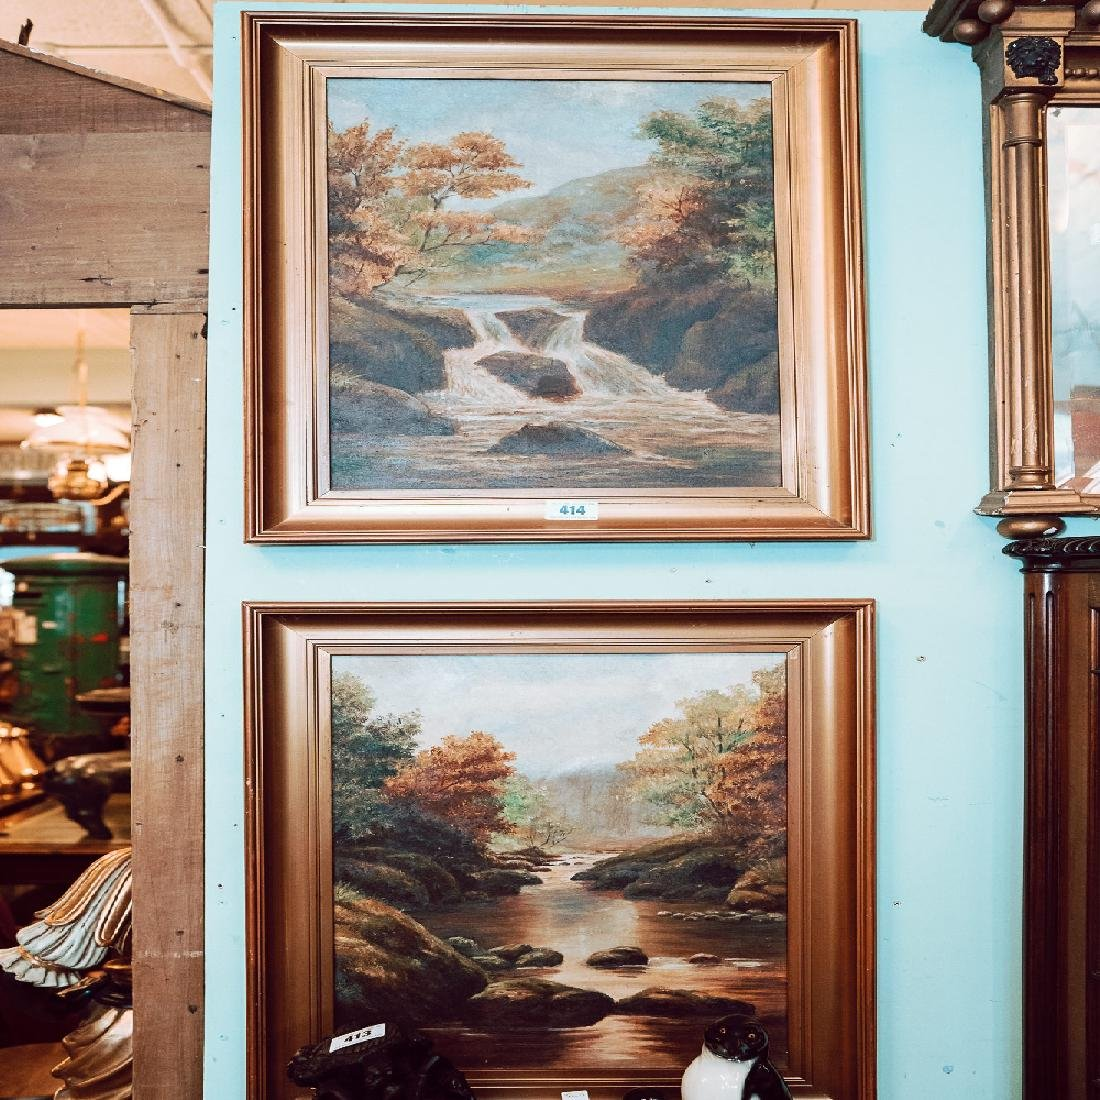 Pair of early 20th. C. oil on Canvas River Scenes